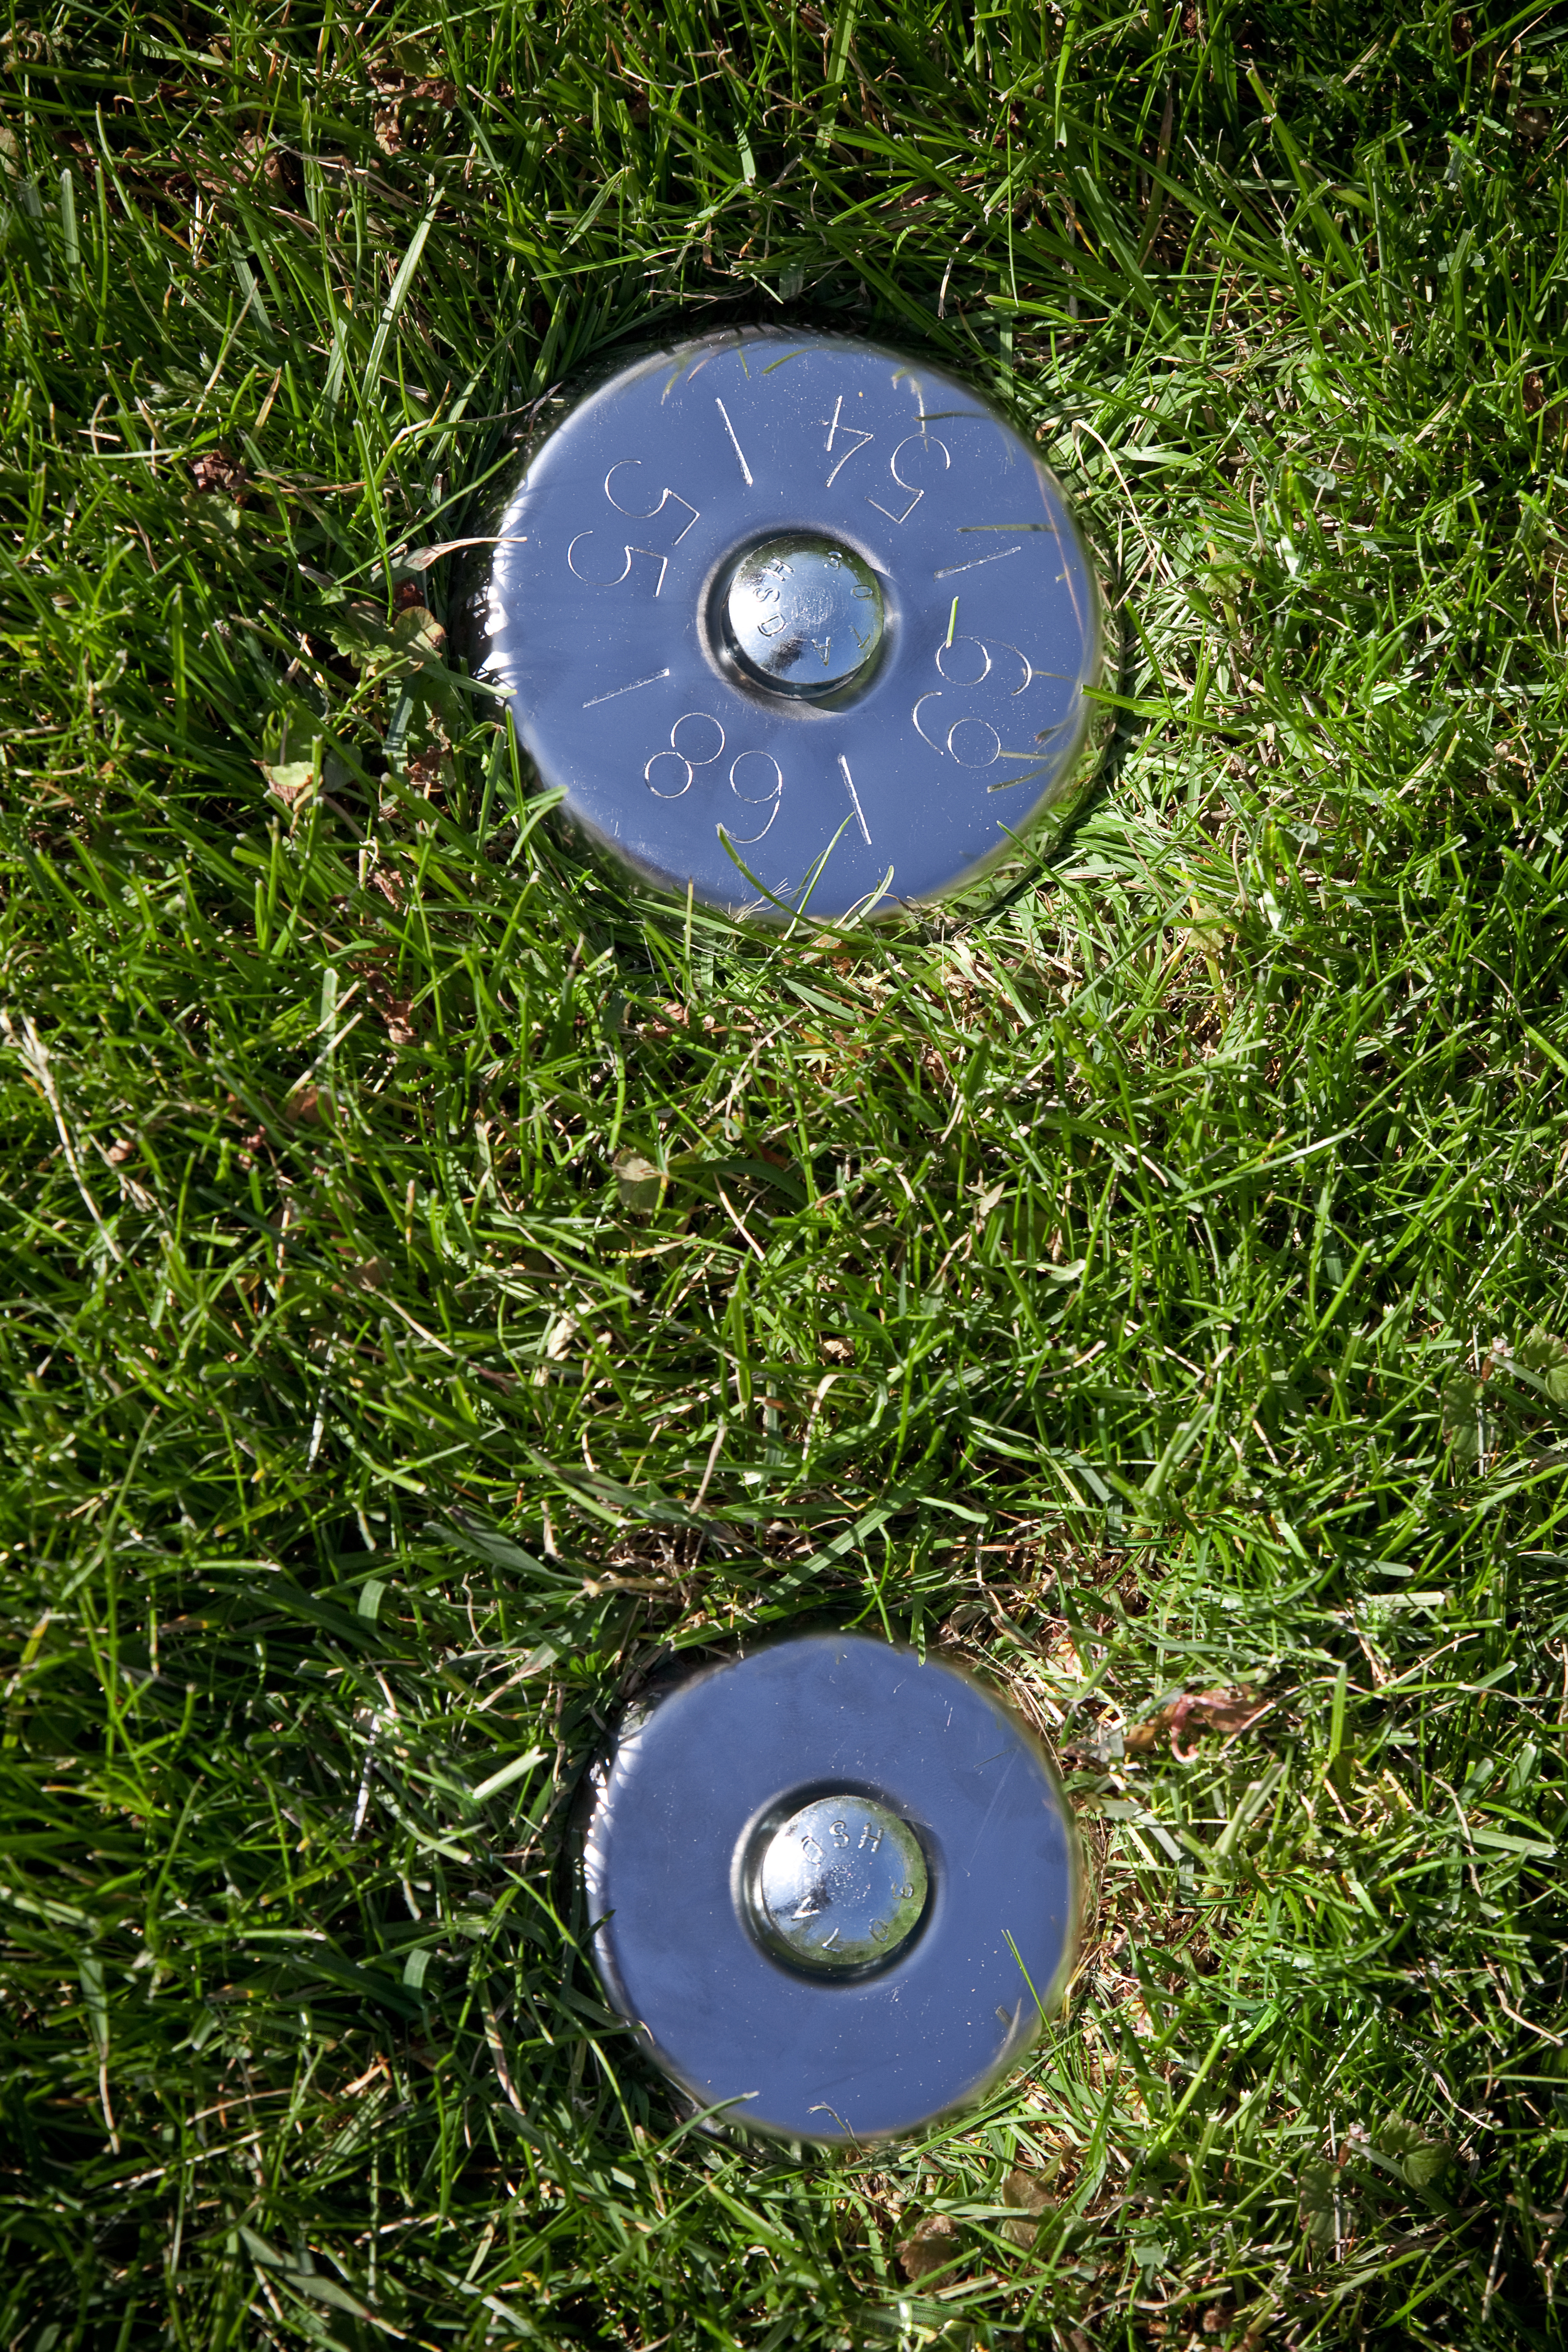 Stainless Steel Lot Markers